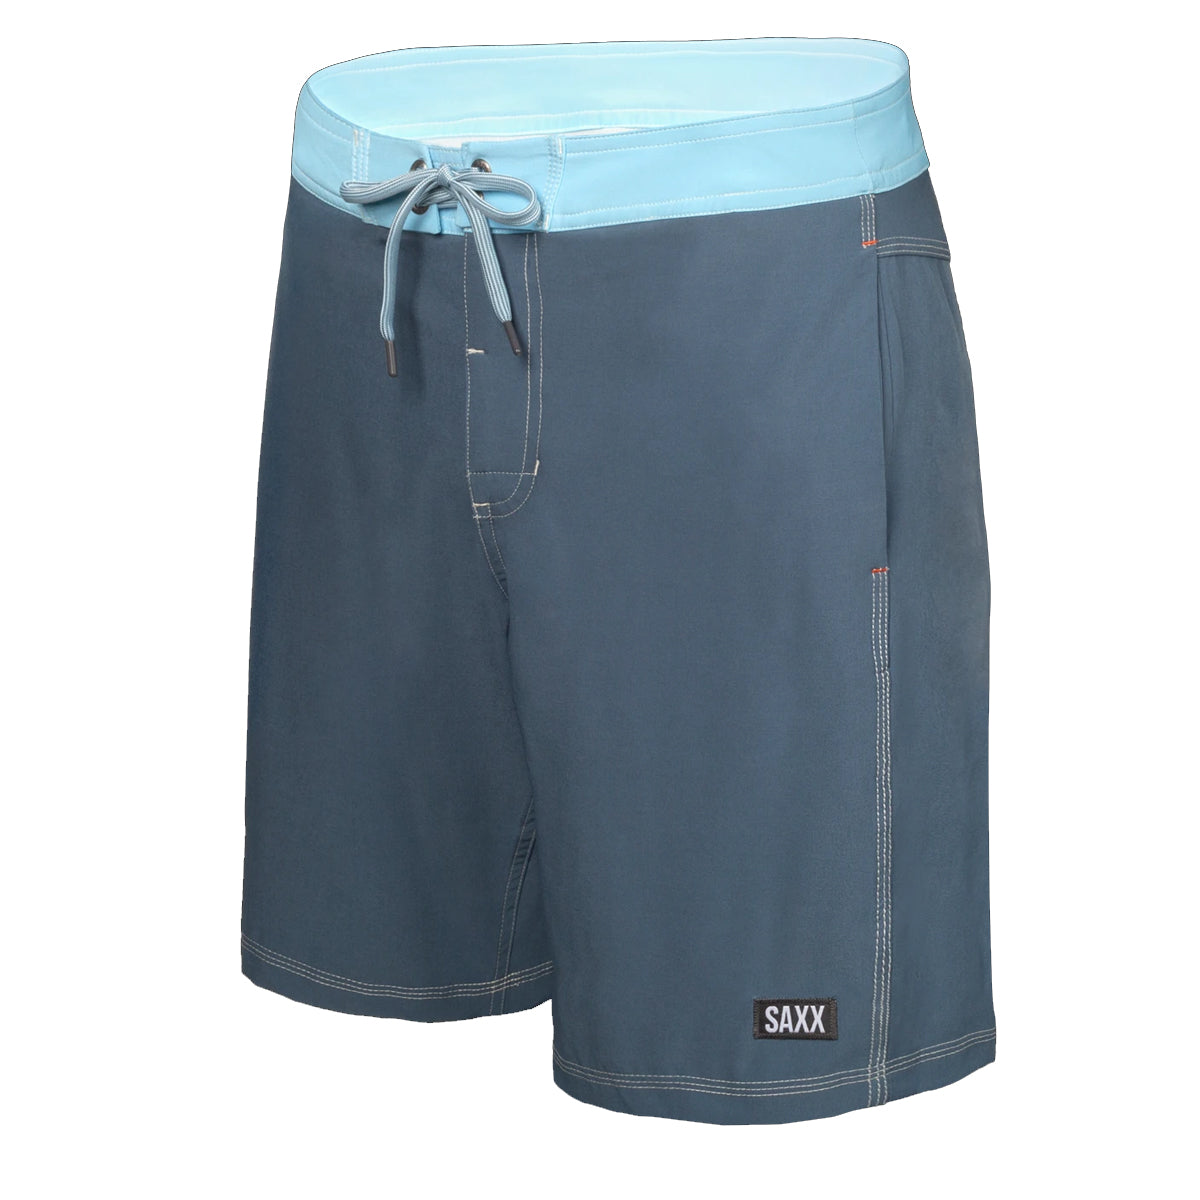 Saxx Men's Betawave 2-in-1 Swim Shorts - Twilight Azure